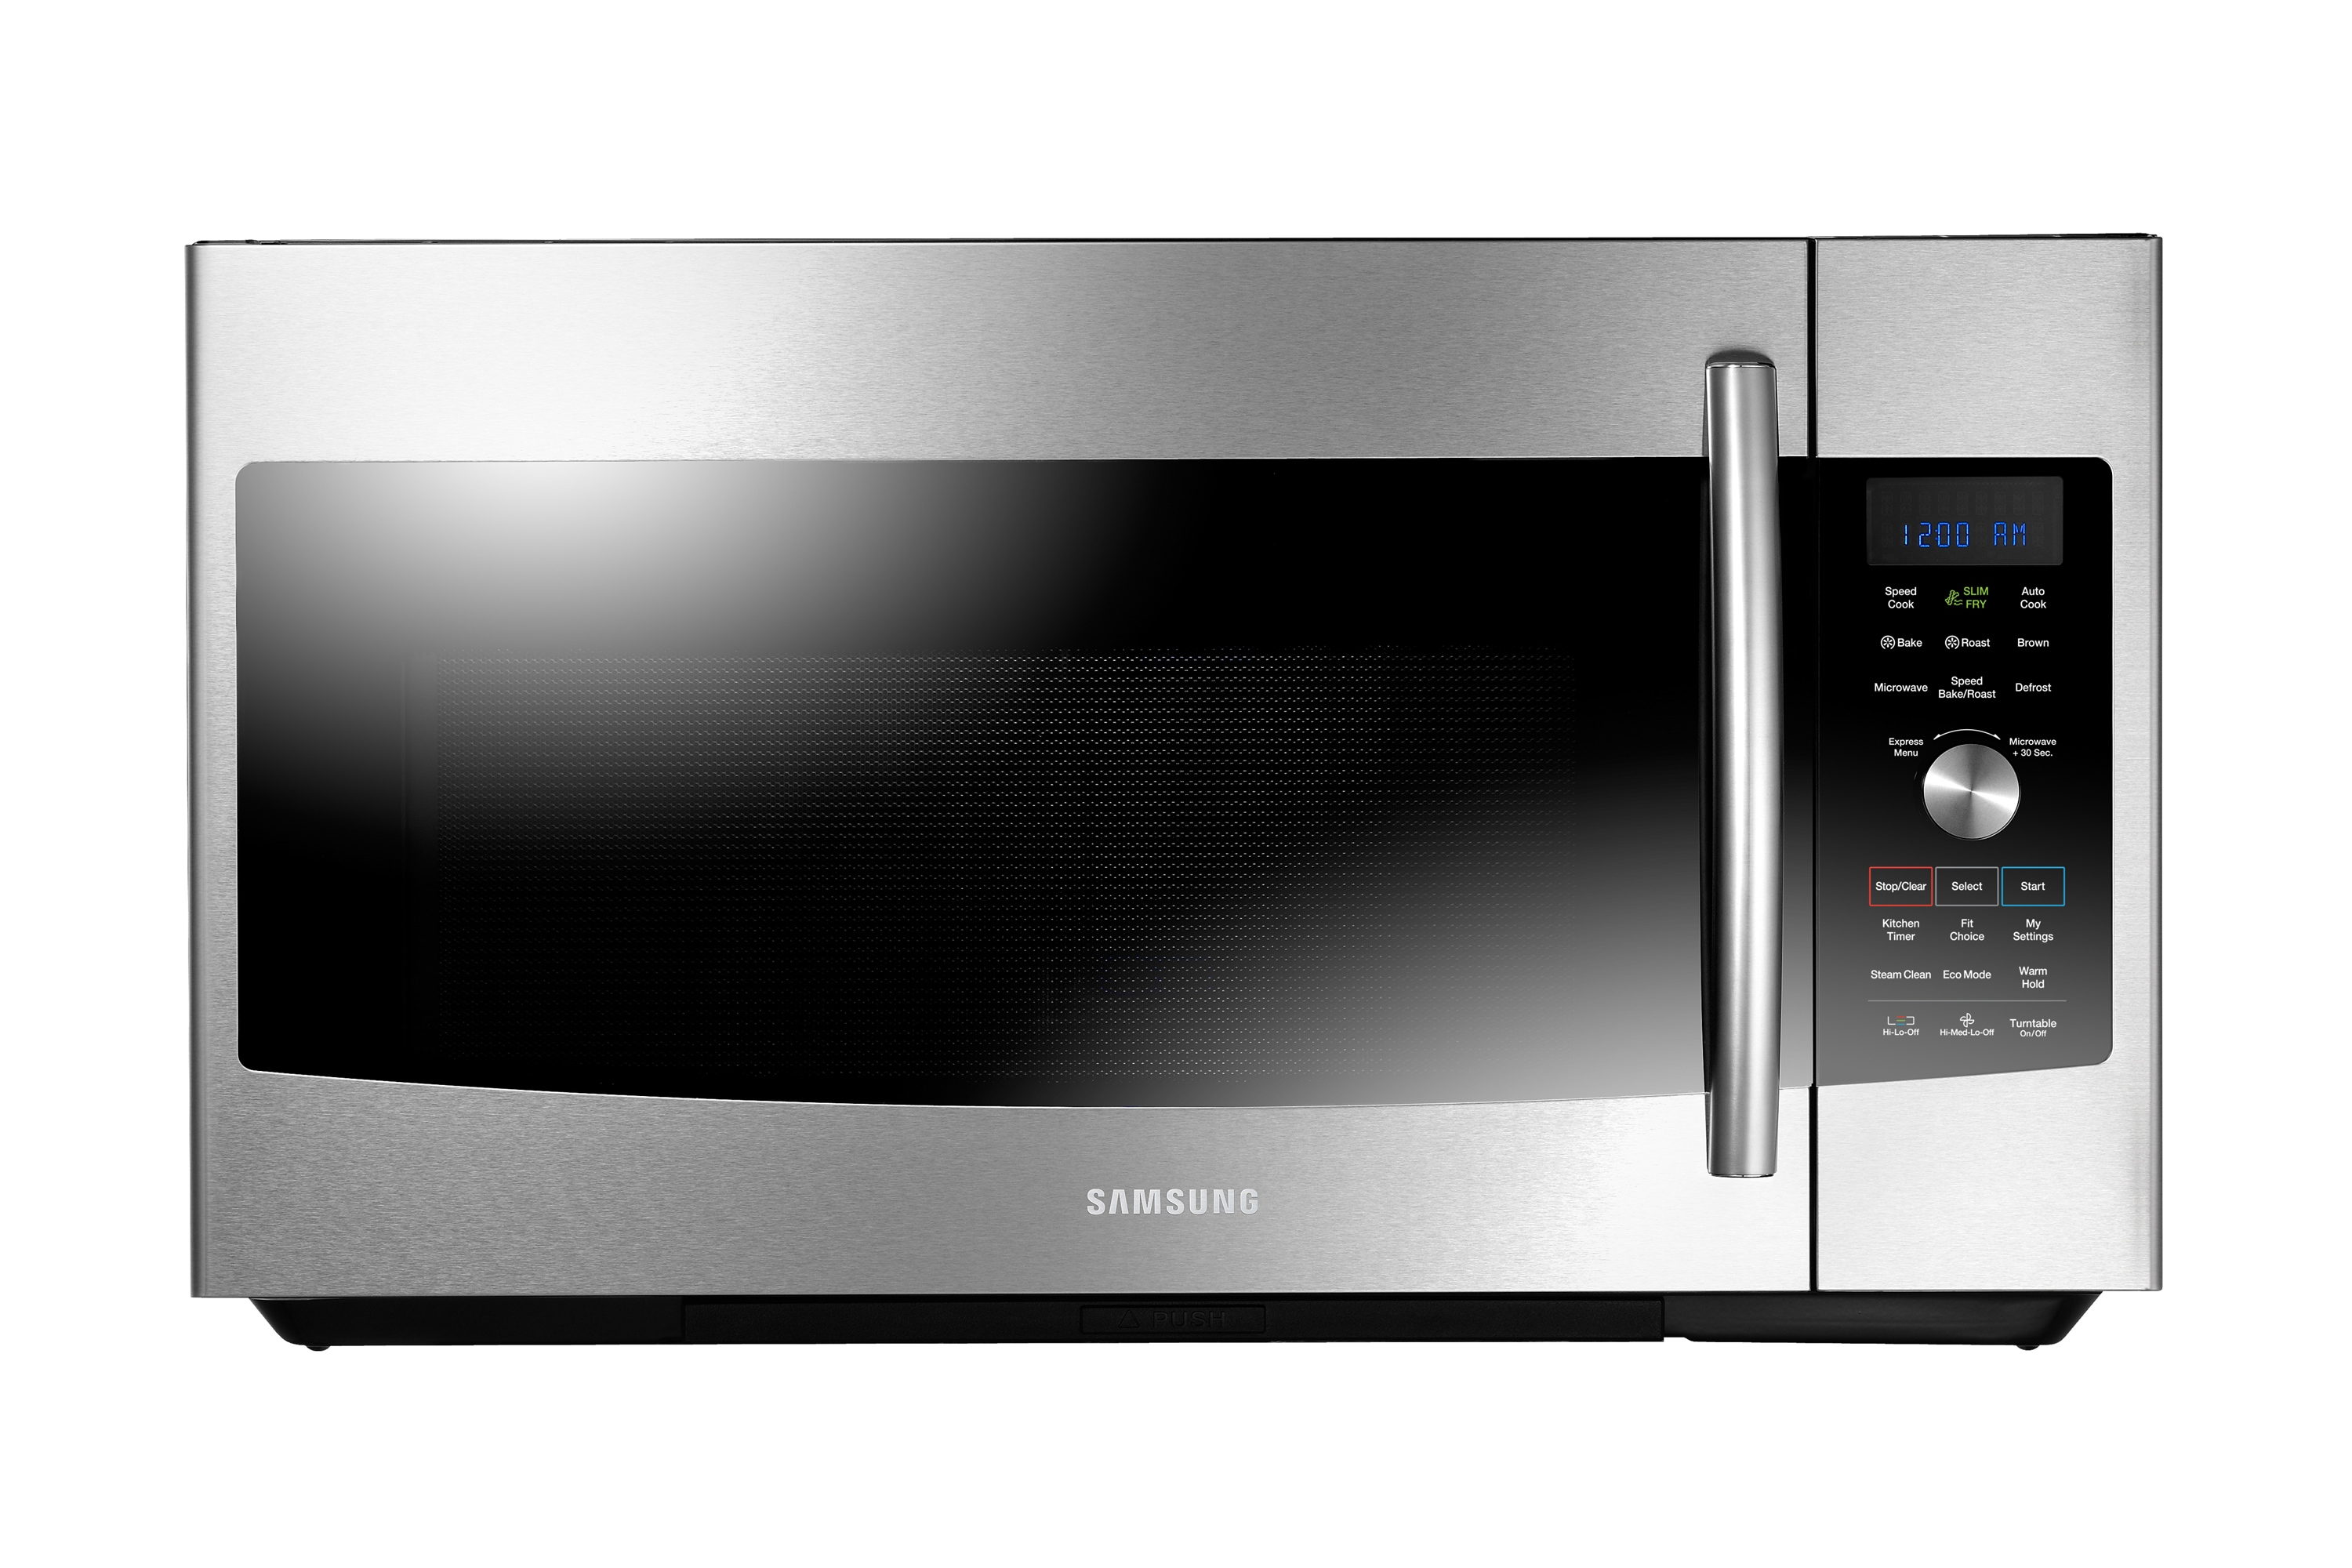 mc17f808kdt over the range microwave with slim fry 1 7 cu ft mc17f808kdt ac samsung canada